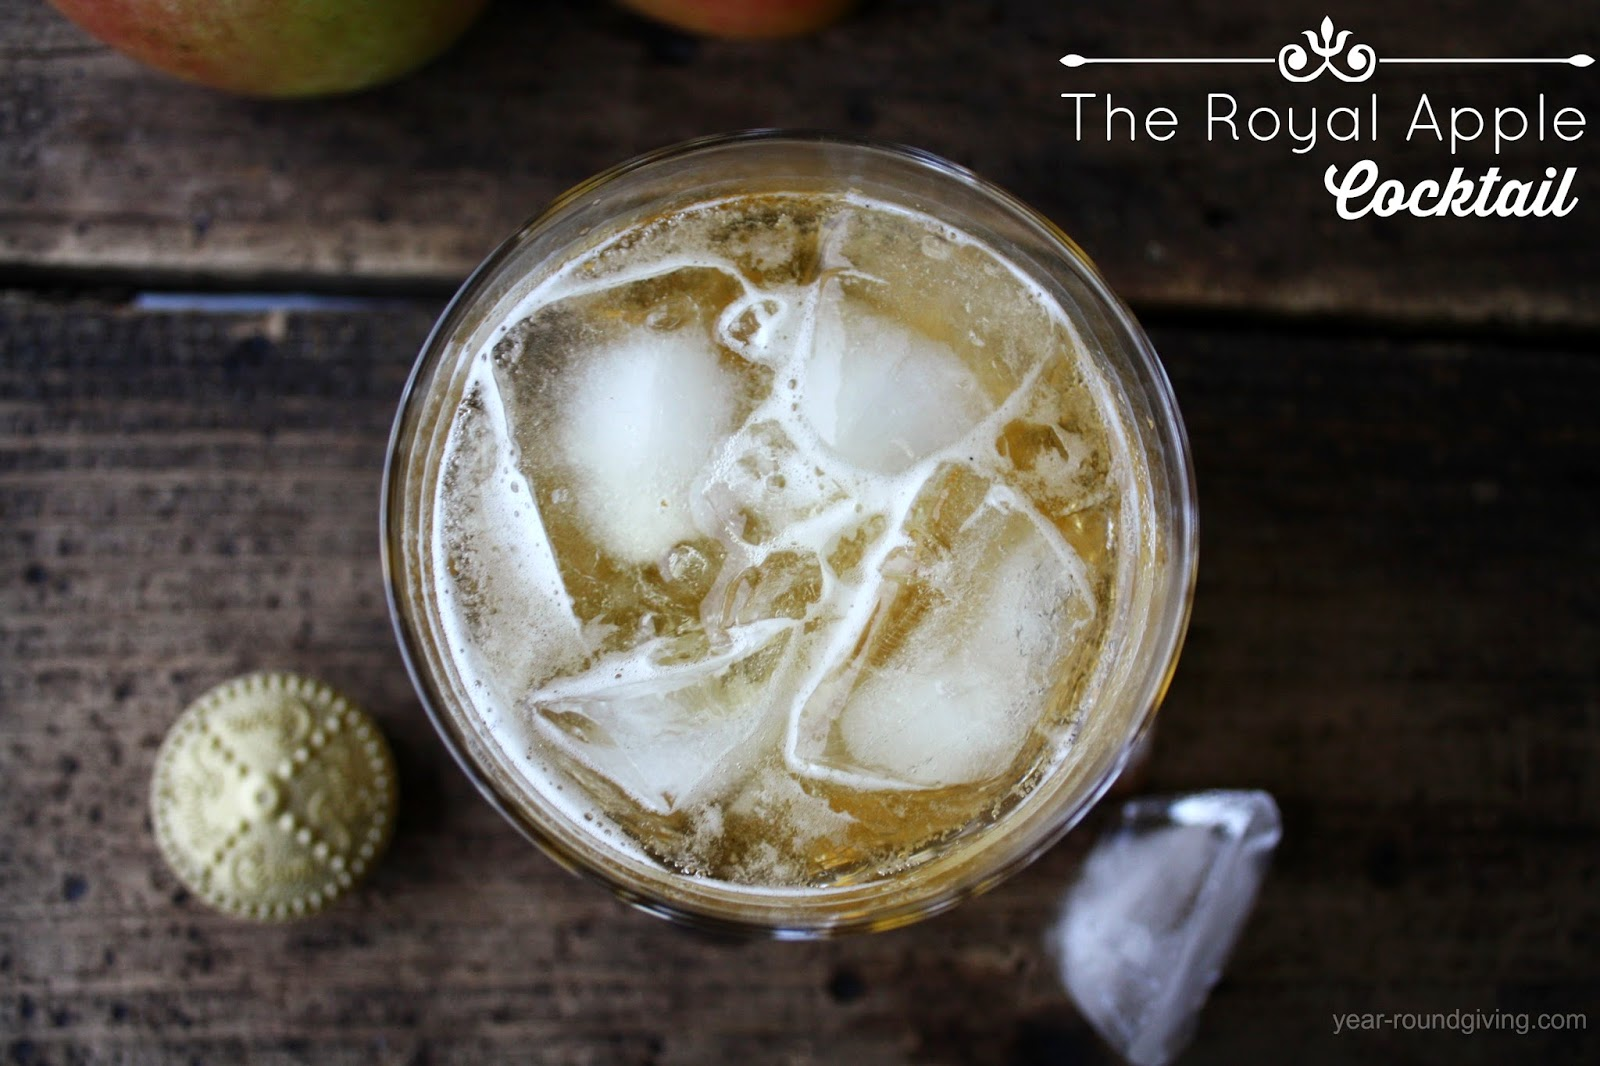 The Royal Apple Cocktail. This is a Friday after the kids have gone to bed drink.